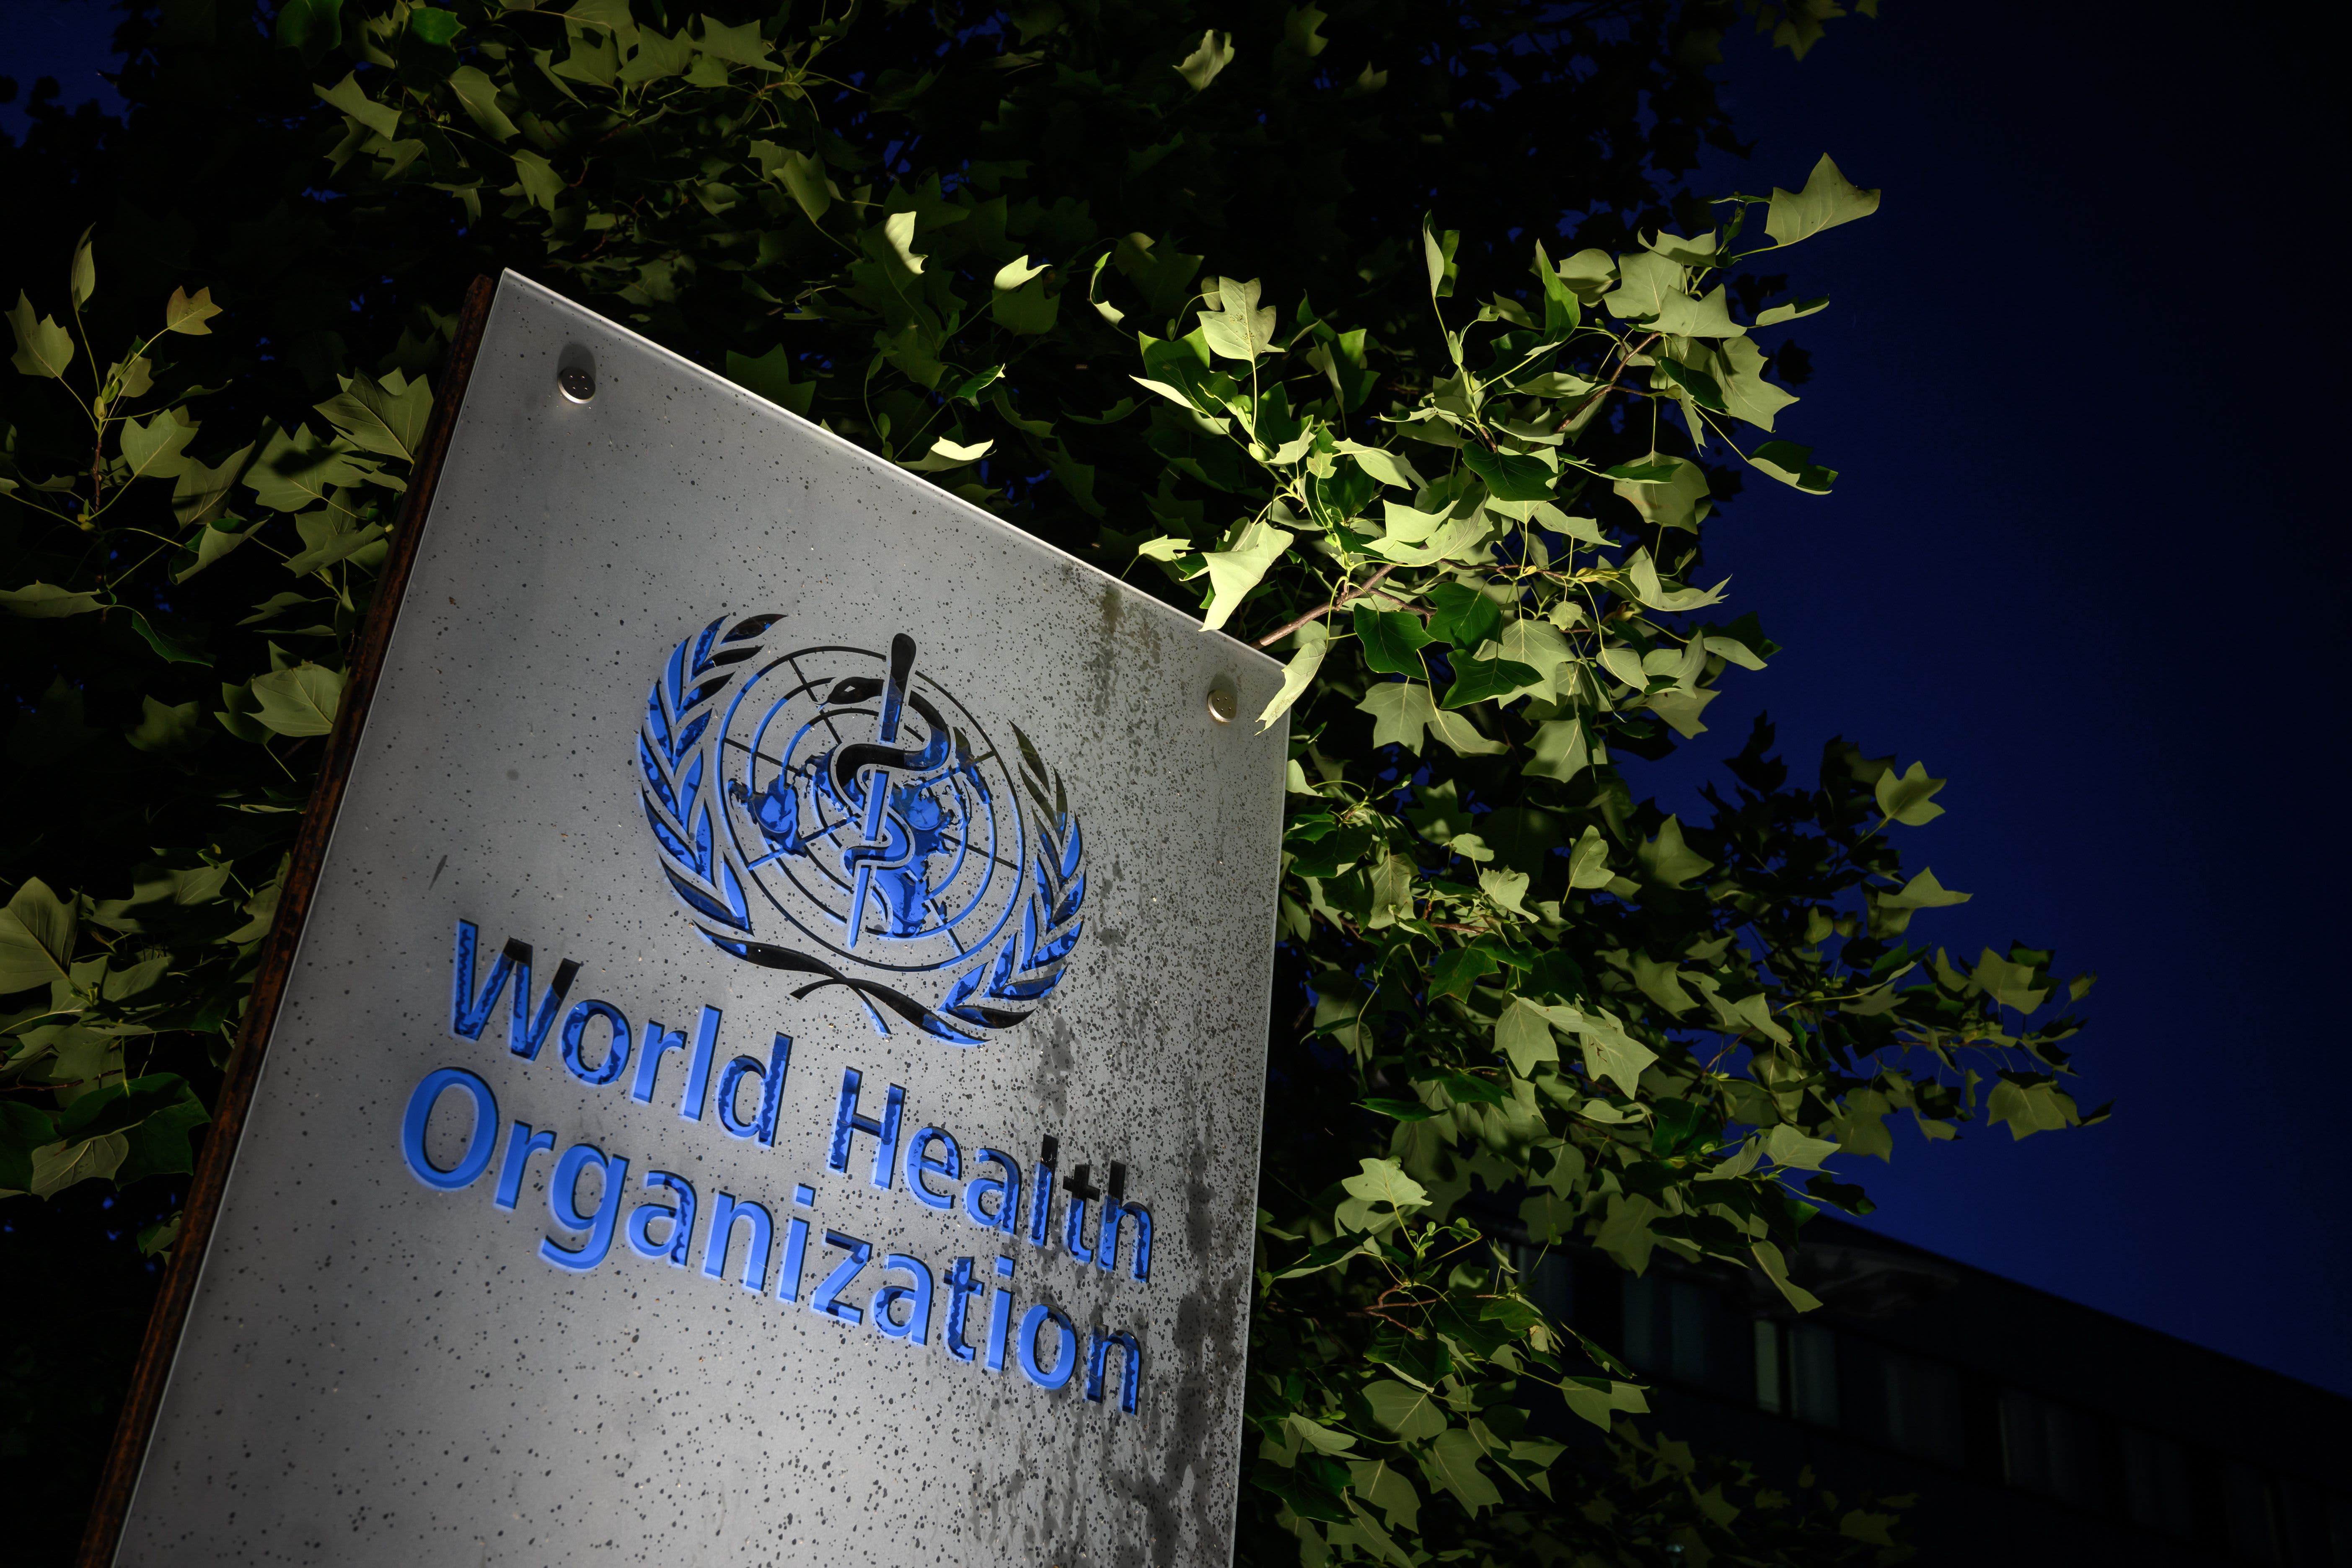 Dr. Fauci to lead U.S. delegation at WHO meetings as Biden plans to reverse Trump withdrawal